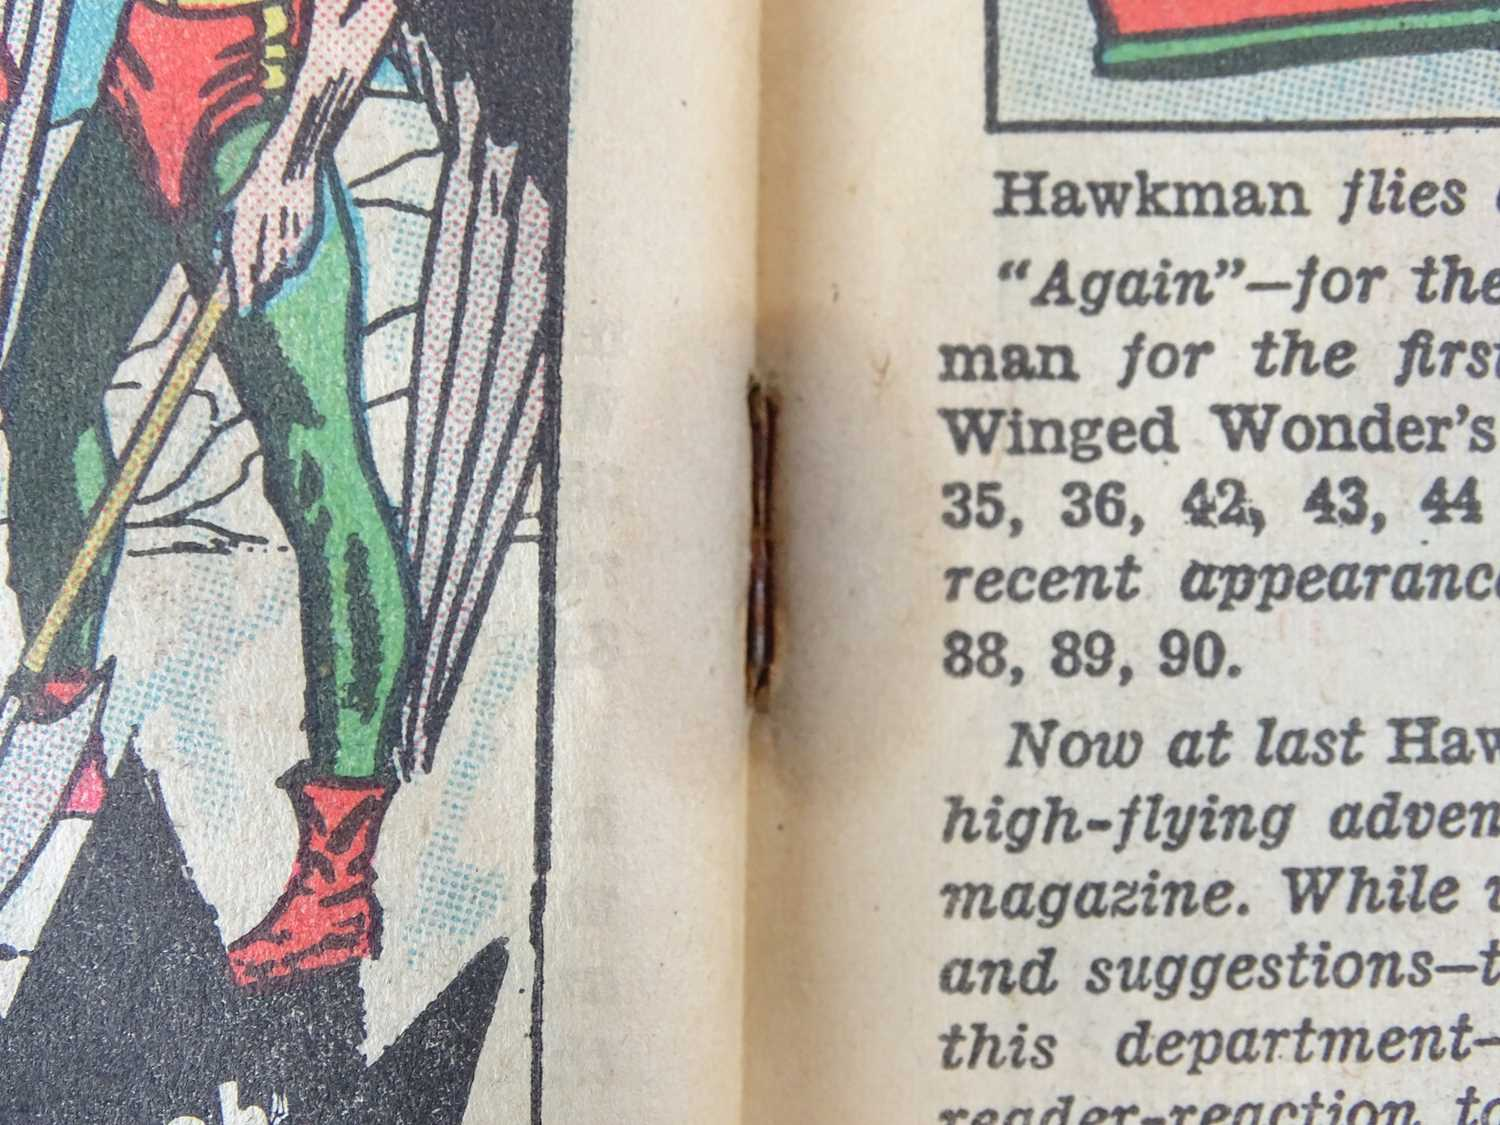 """HAWKMAN #1 - (DC - UK Cover Price) - First solo title for Hawkman gets after appearances in """"Brave - Image 6 of 9"""